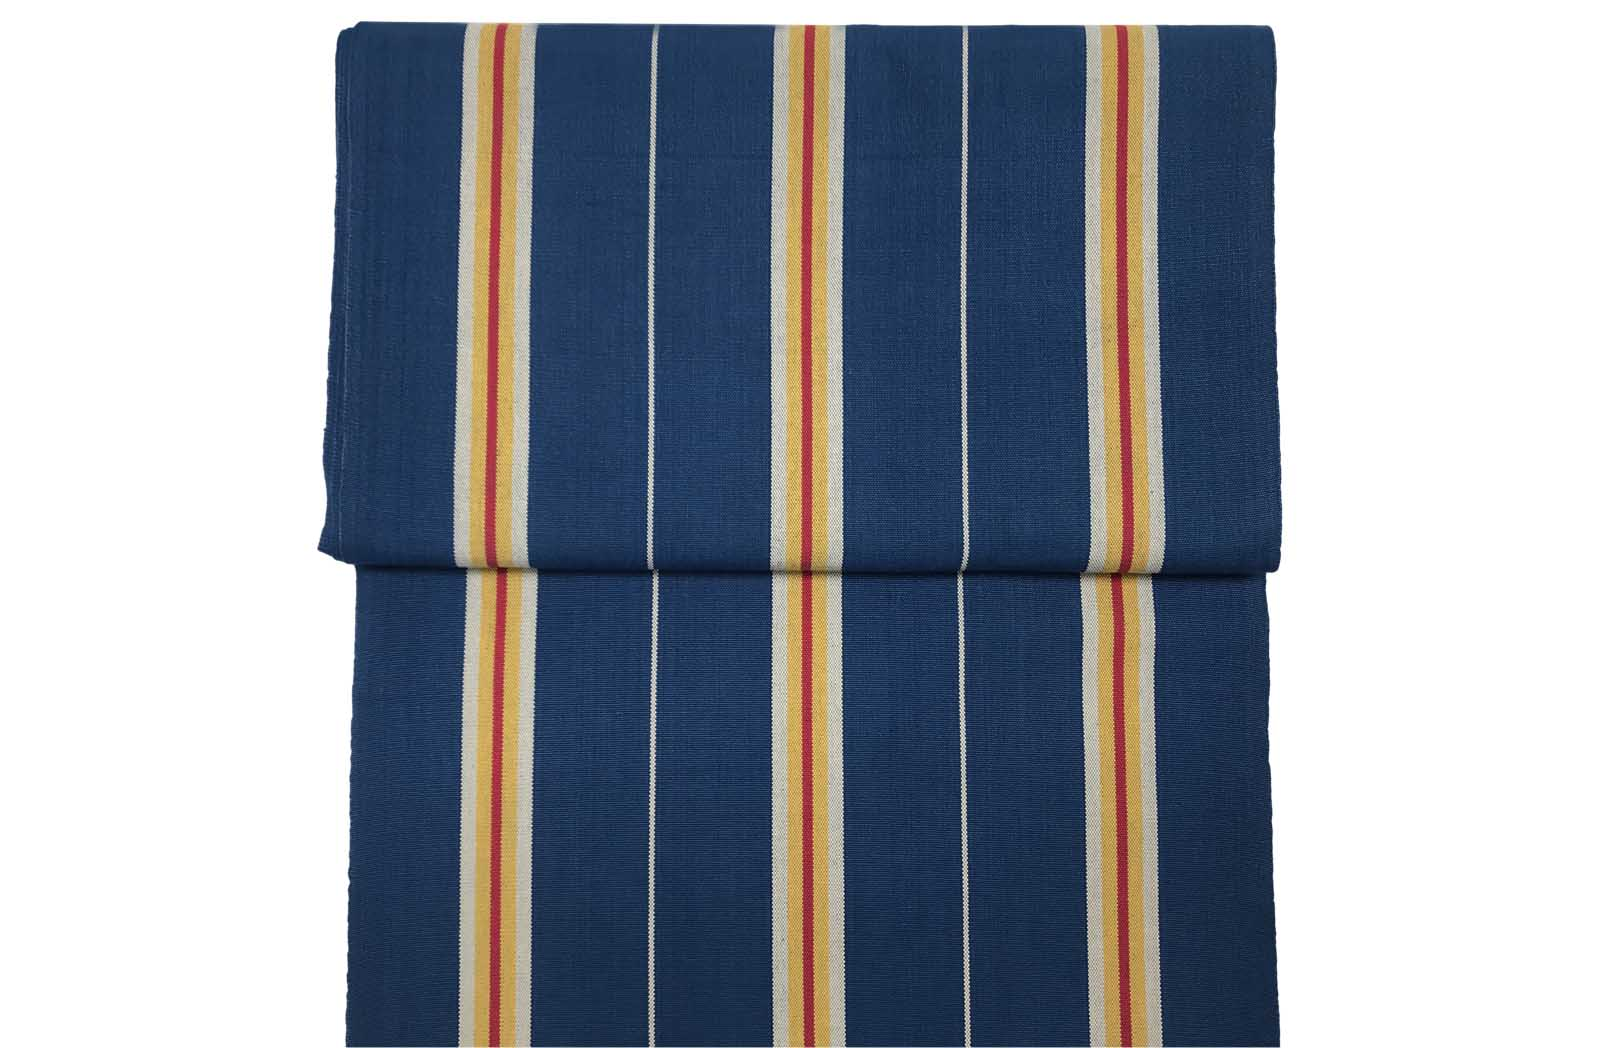 Navy blue, Off white & Gold Vintage Deckchair Fabric